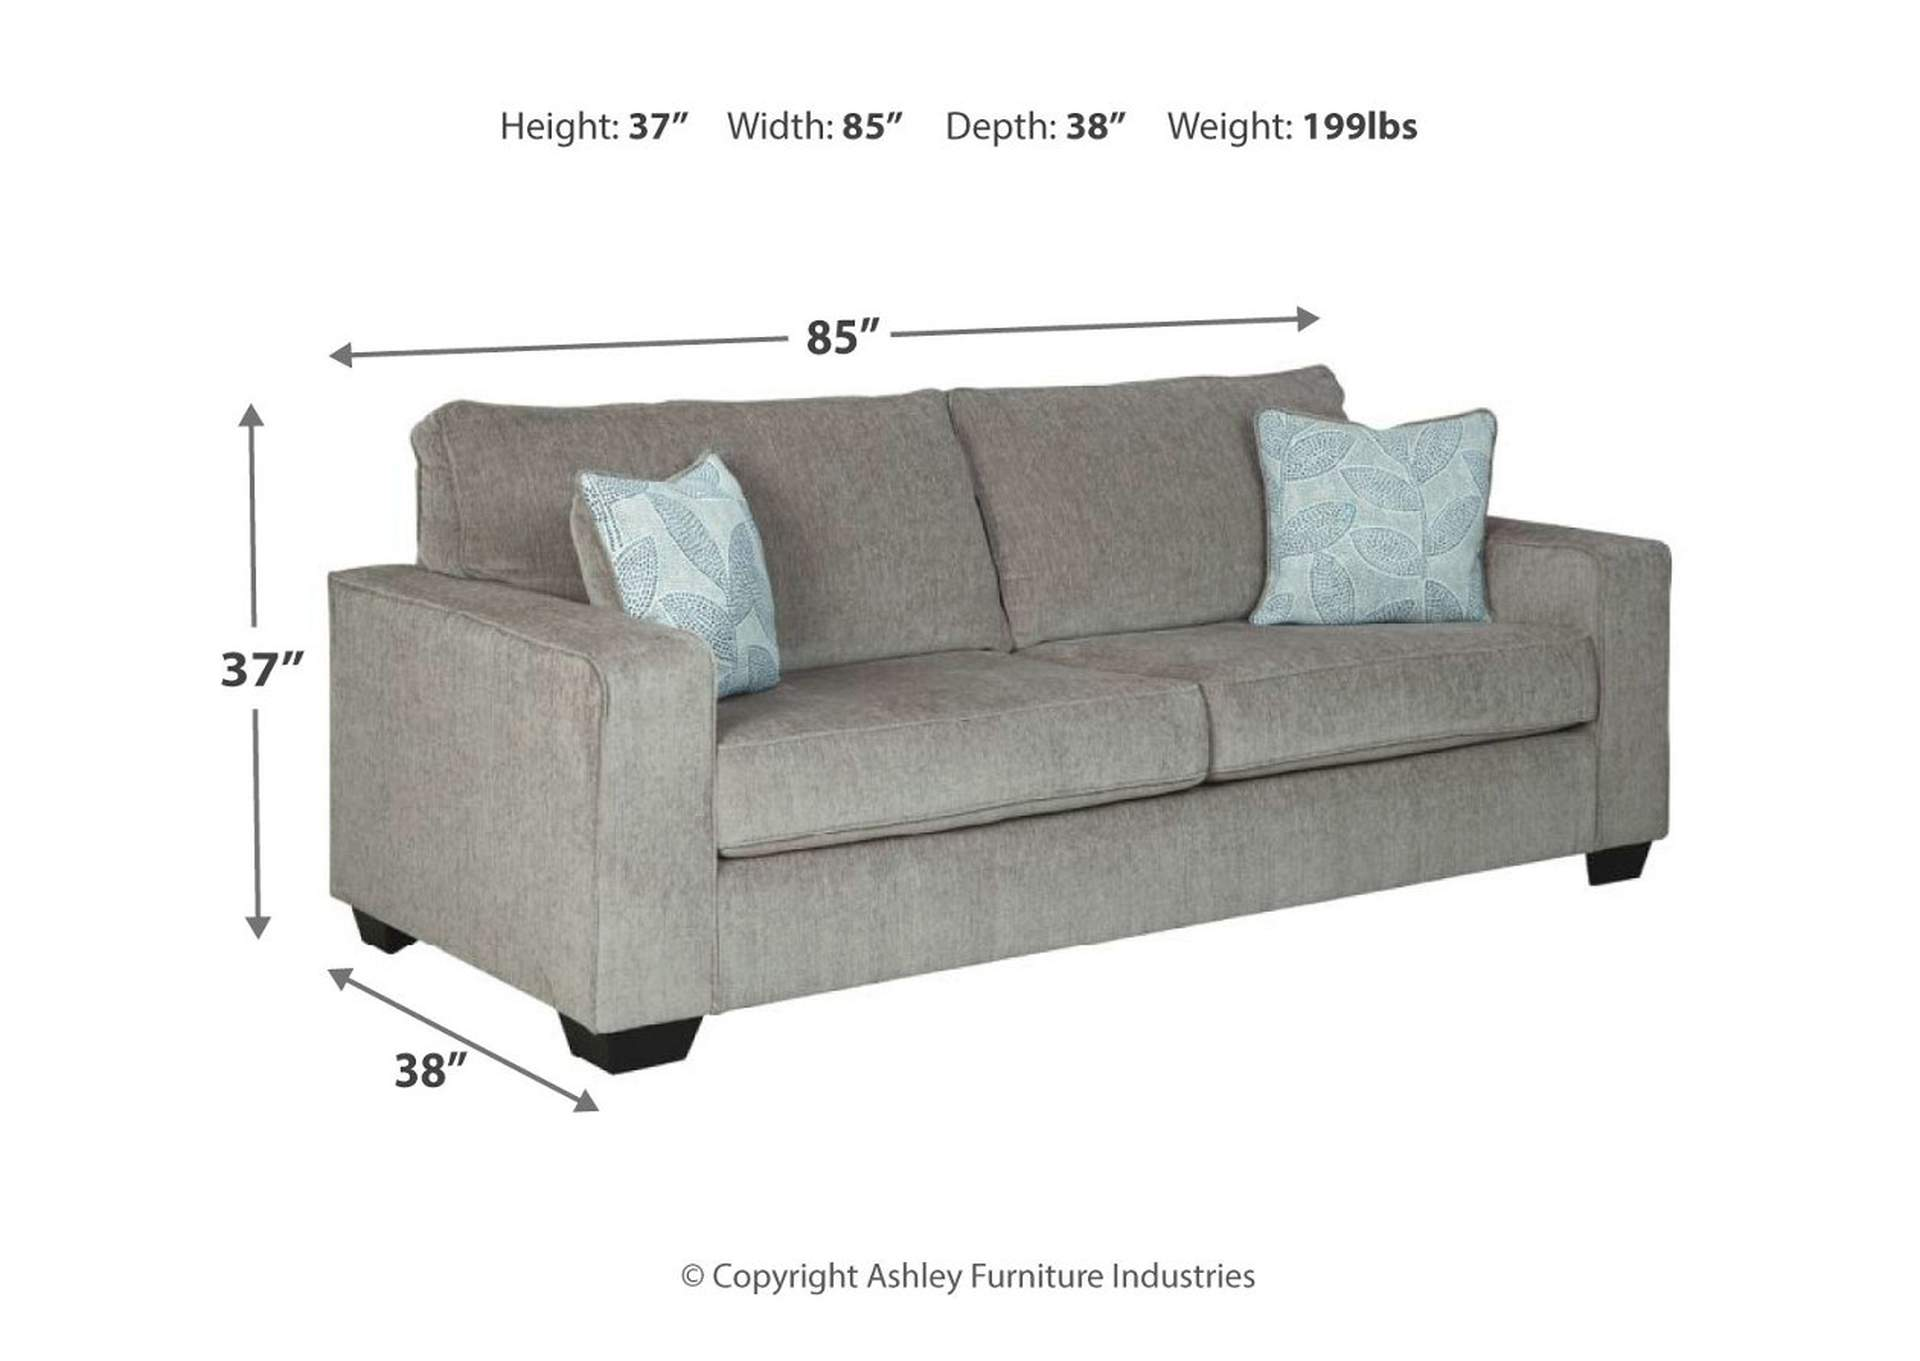 Altari Alloy Queen Sofa Sleeper,Signature Design By Ashley